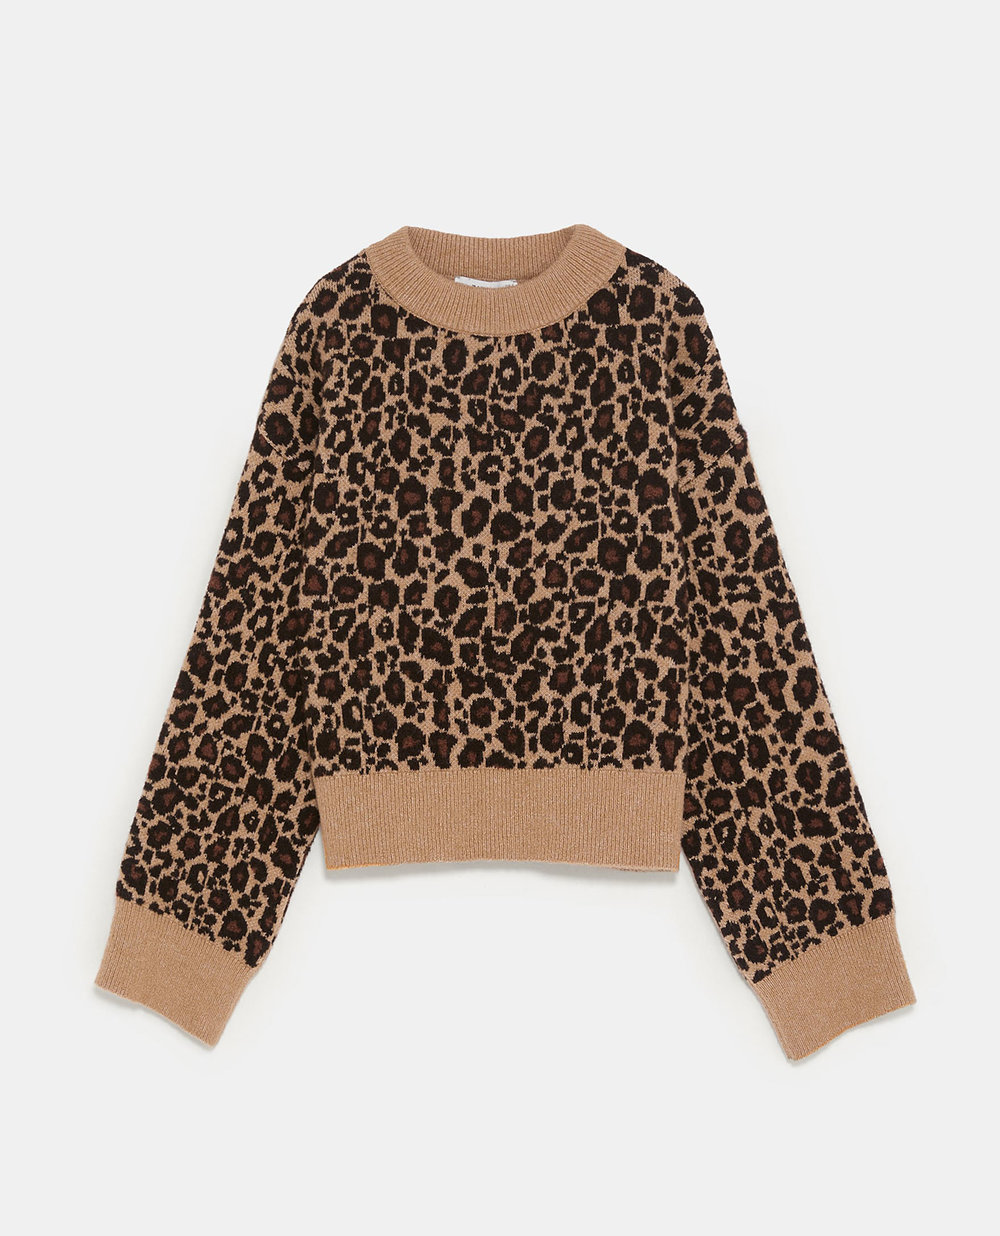 Zara Leopard Sweater       $25.99